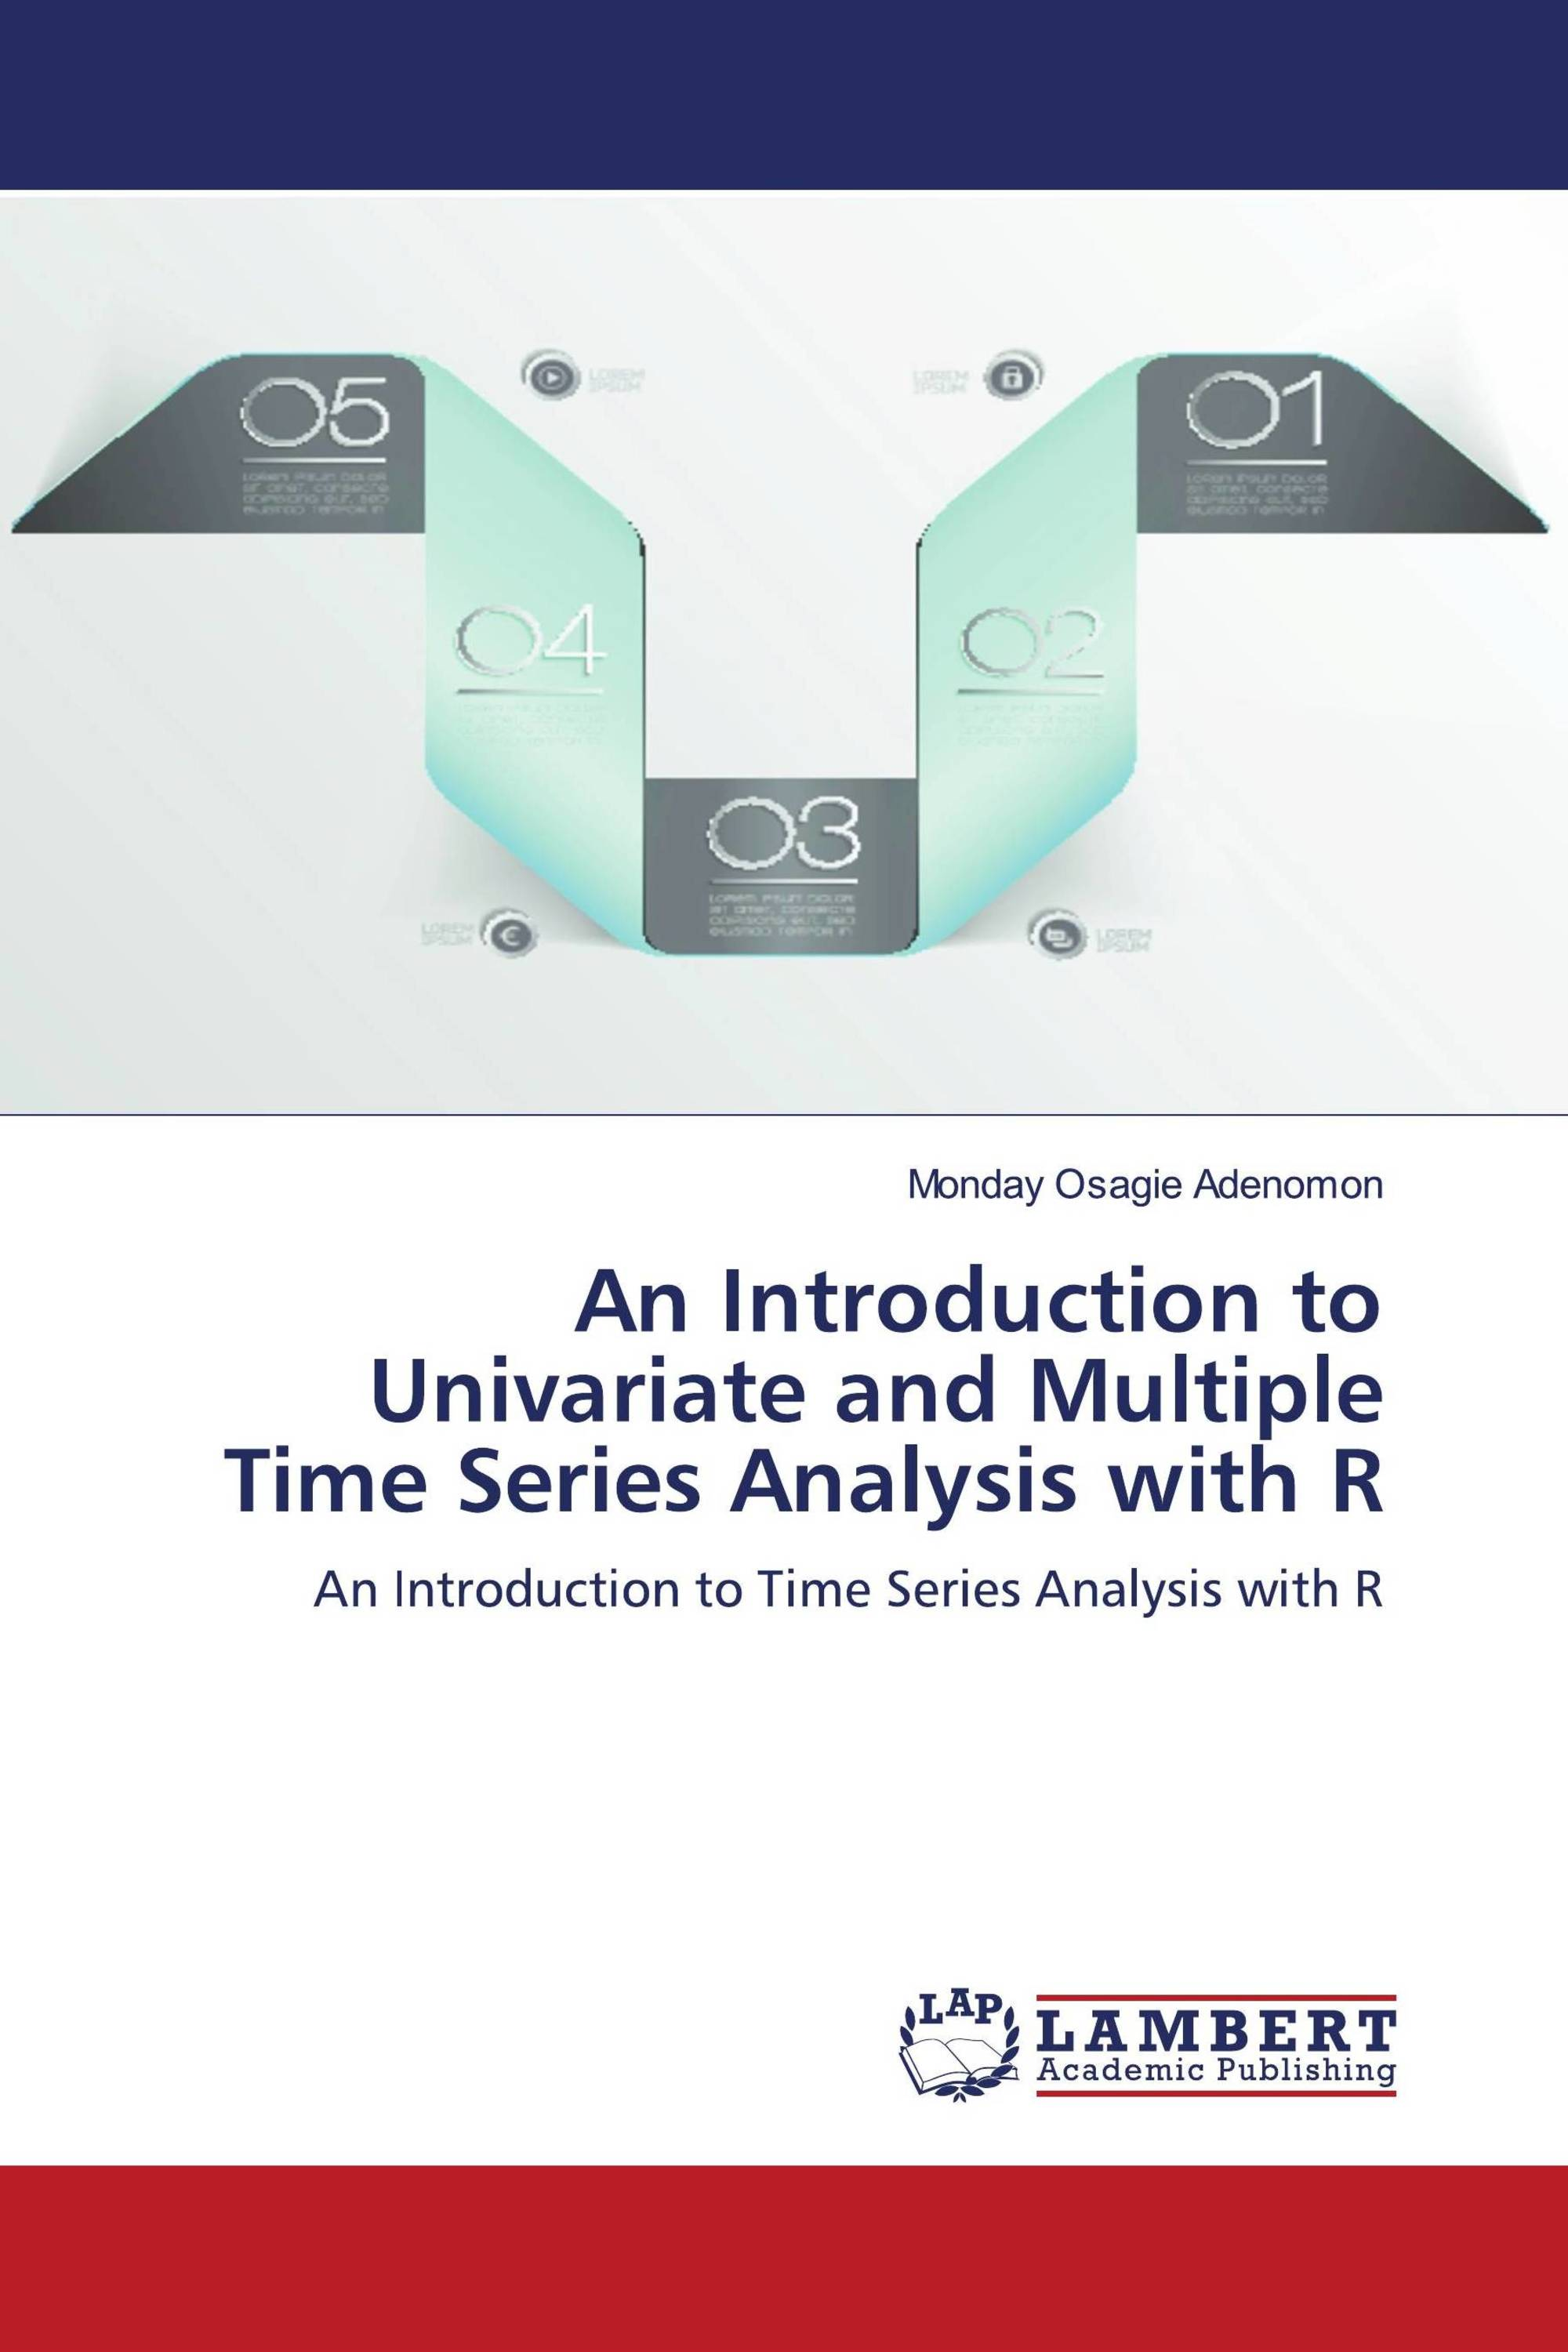 an introduction to univariate financial time After providing an intuitive introduction to time-series analysis and the ubiquitous autoregressive moving-average (arma) model, the authors carefully cover univariate and multivariate models for volatilities.